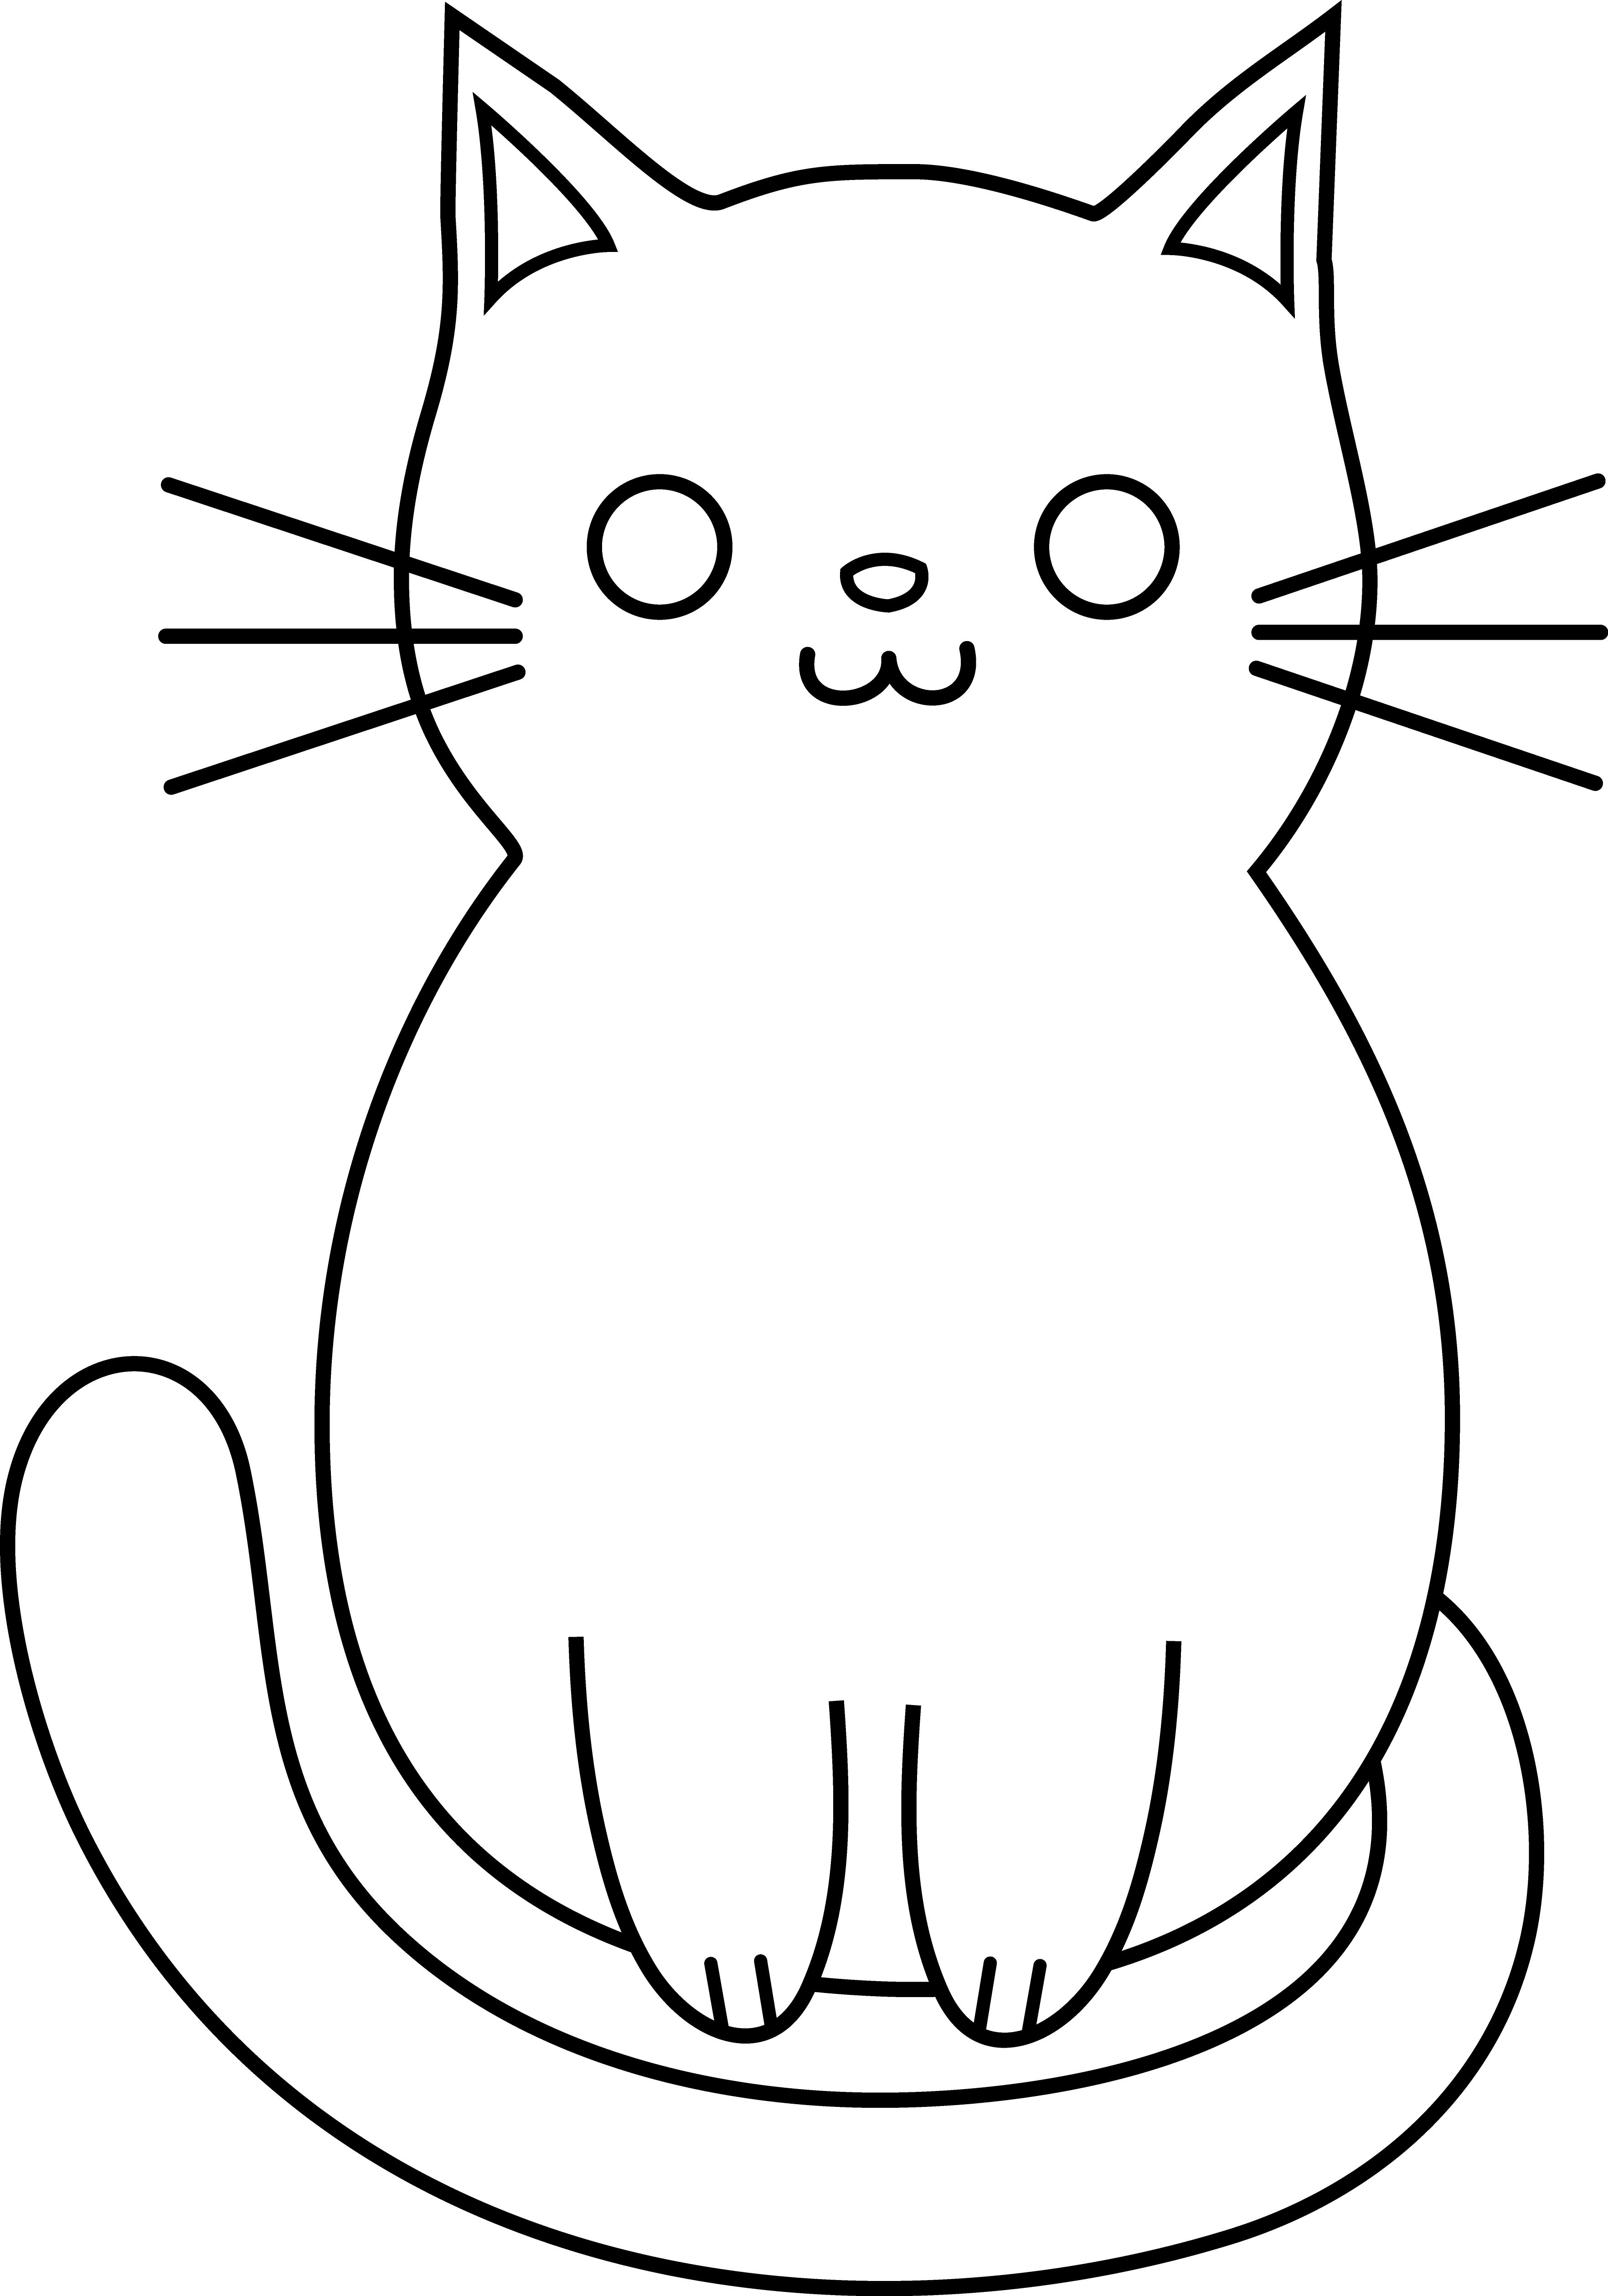 Easy Cat Drawing Pic Simple Cat Drawing Simple Cat Face.